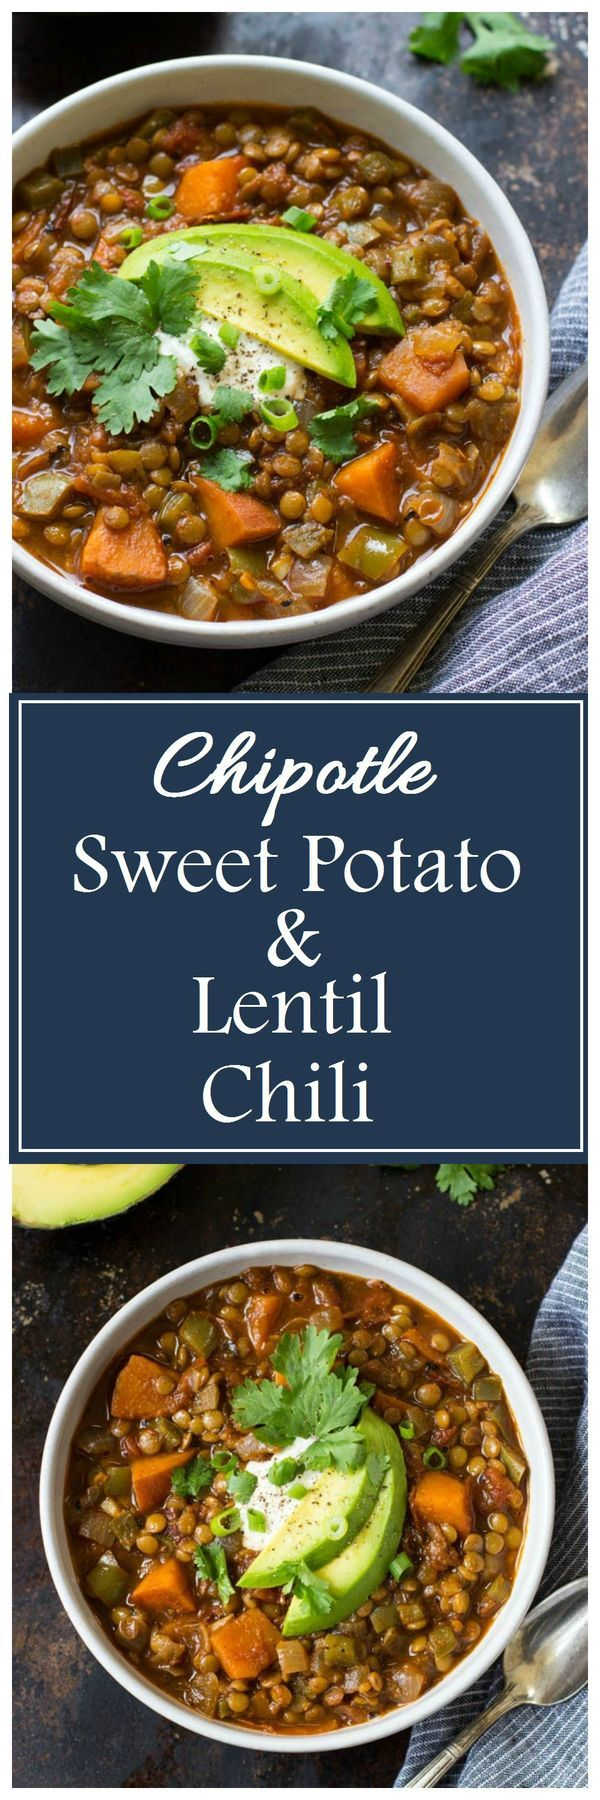 Chipotle Sweet Potato & Lentil Chili- this is the BEST chili! The smoky chipotle flavor tastes so delicious with the sweet potatoes!!